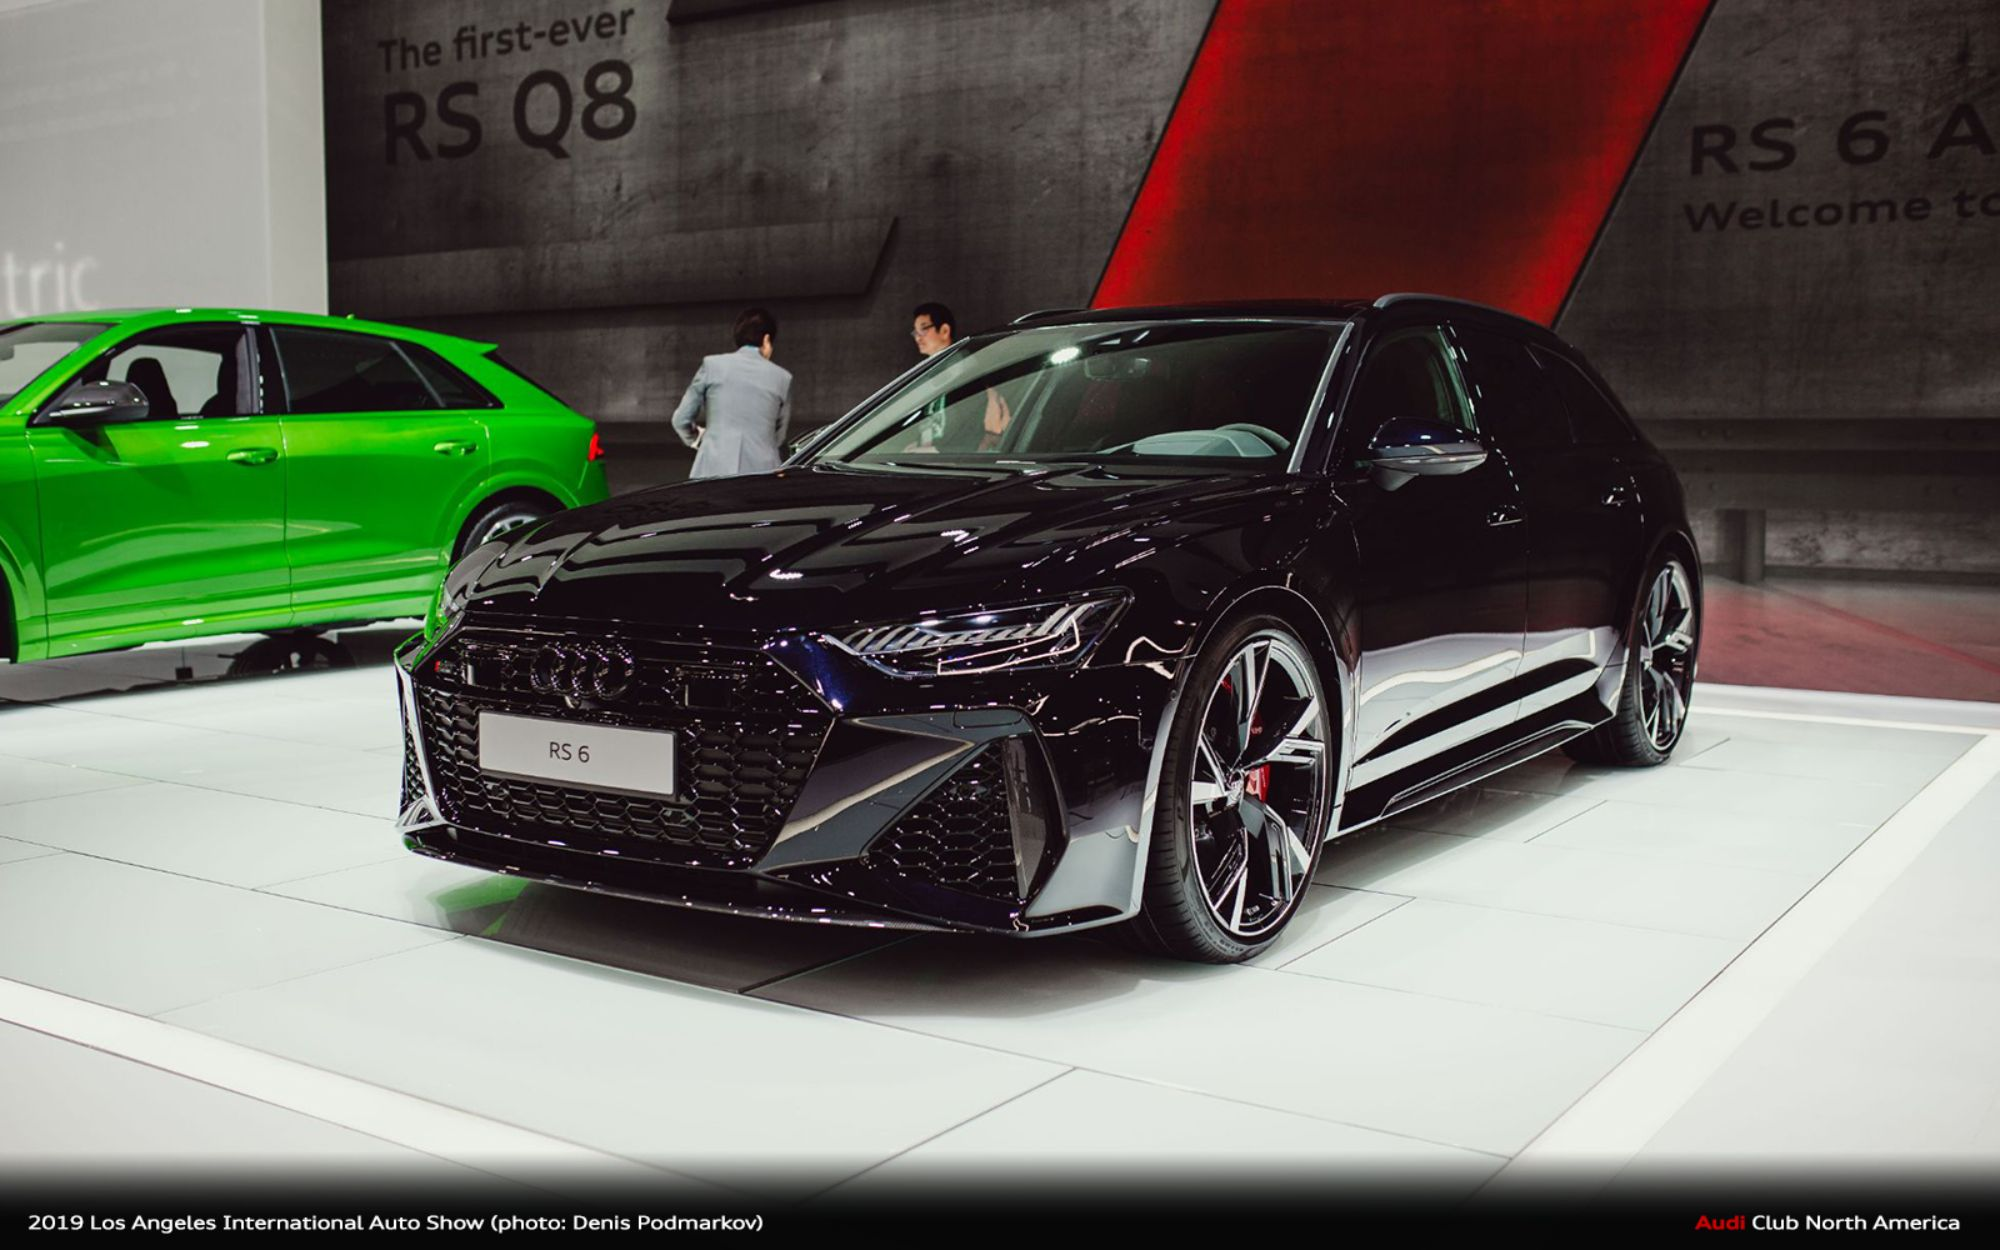 quattro Magazine Q1_2020: 2019 Los Angeles International Auto Show